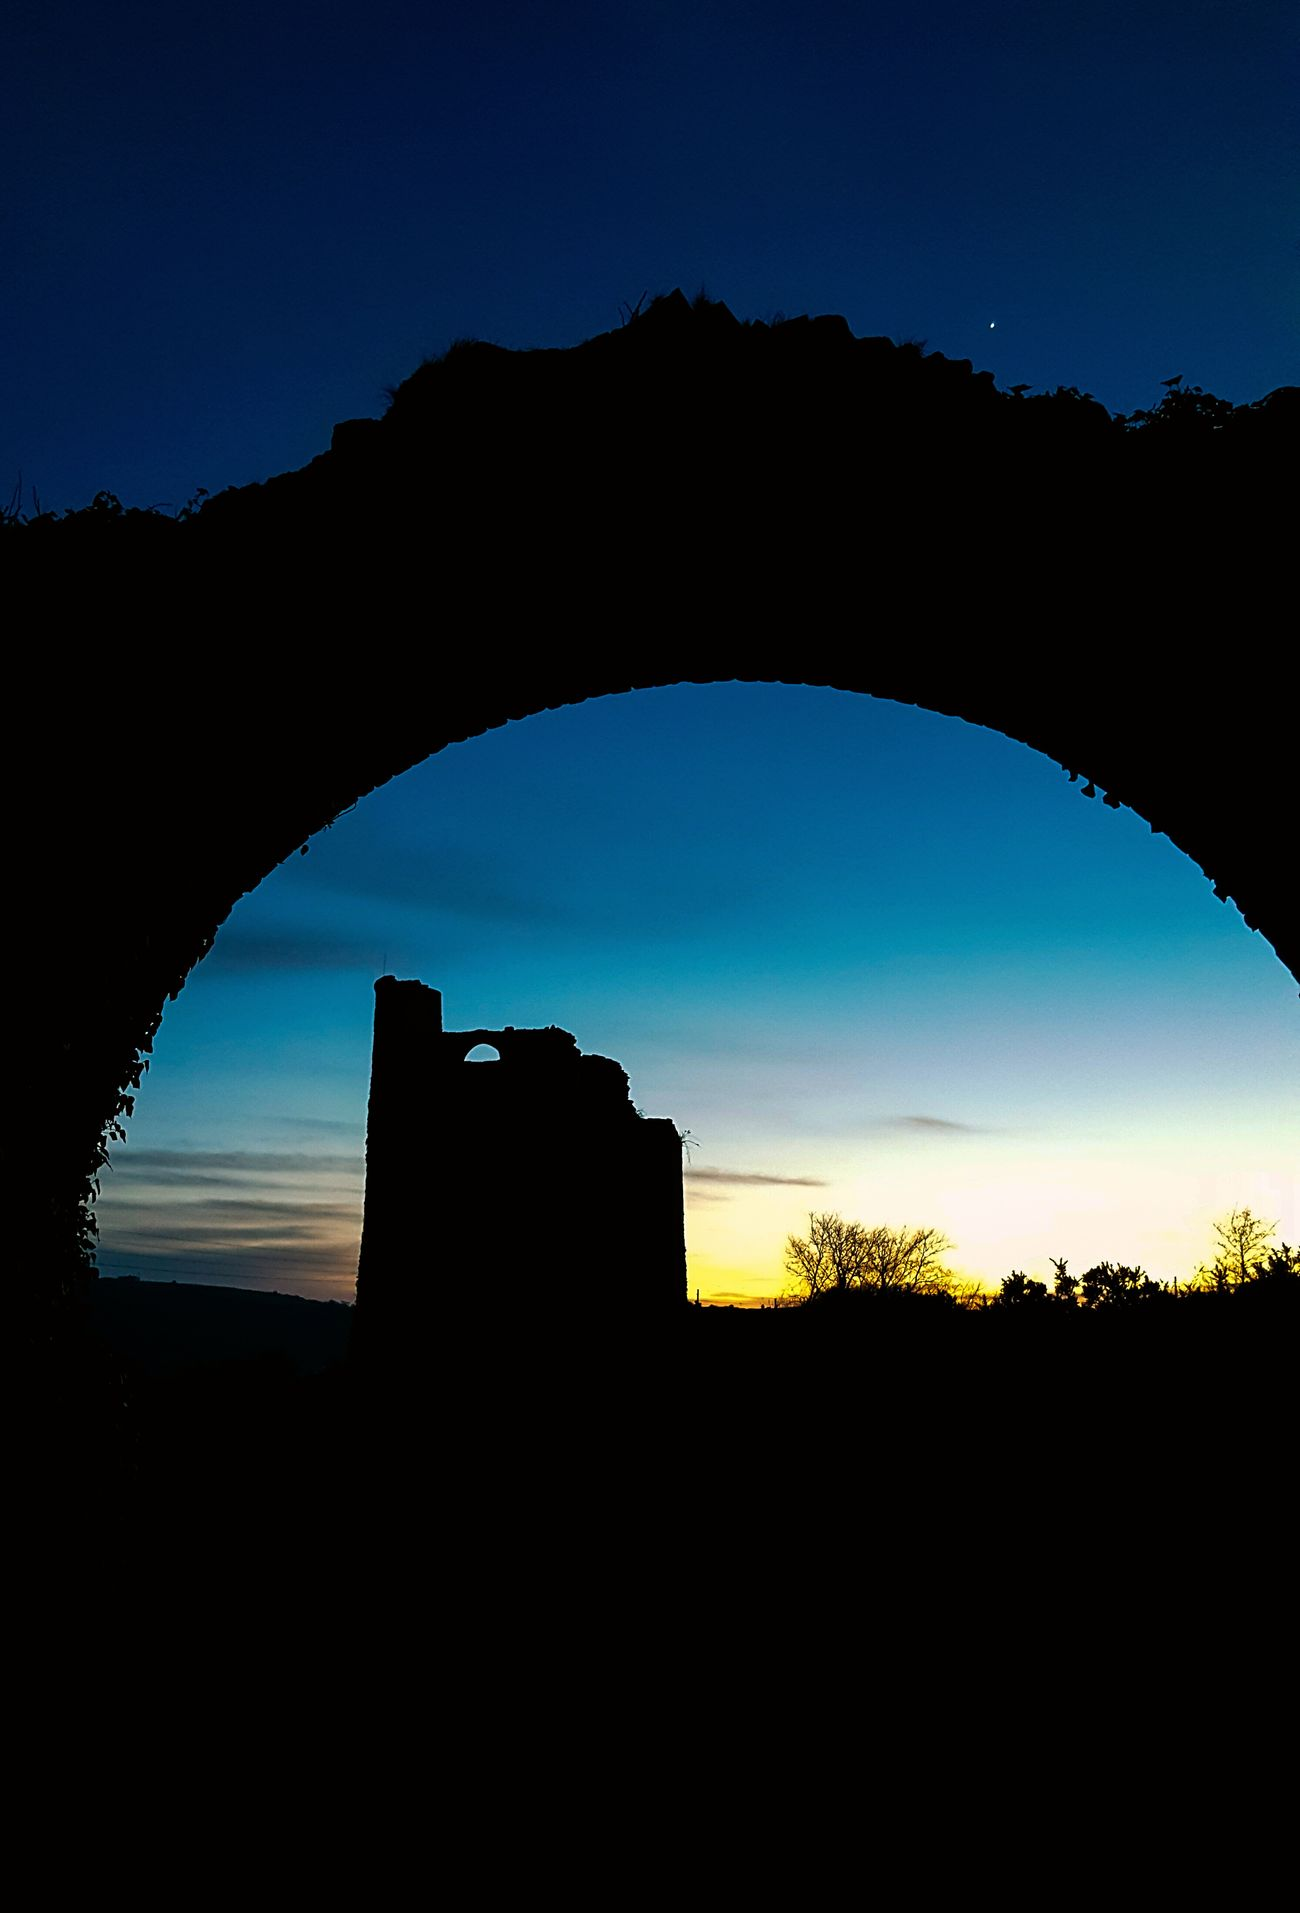 Siluette Stone Archway History Architecture Silhouette Sky Built Structure Old Ruin Sunset Arch Outdoors No People Scenics Multi Colored Sillouettes Sillouettes And Sunsets Silhouette_collection Sillhouttes And Sky Sunlight Sunset_collection Sunsets Dark Stone Structure Mining Industry Mining Heritage Mining Site Mining Village Mineshaft Tinmines Landscape Landscapes Evening Carn Brea Carnbrea Cornwall